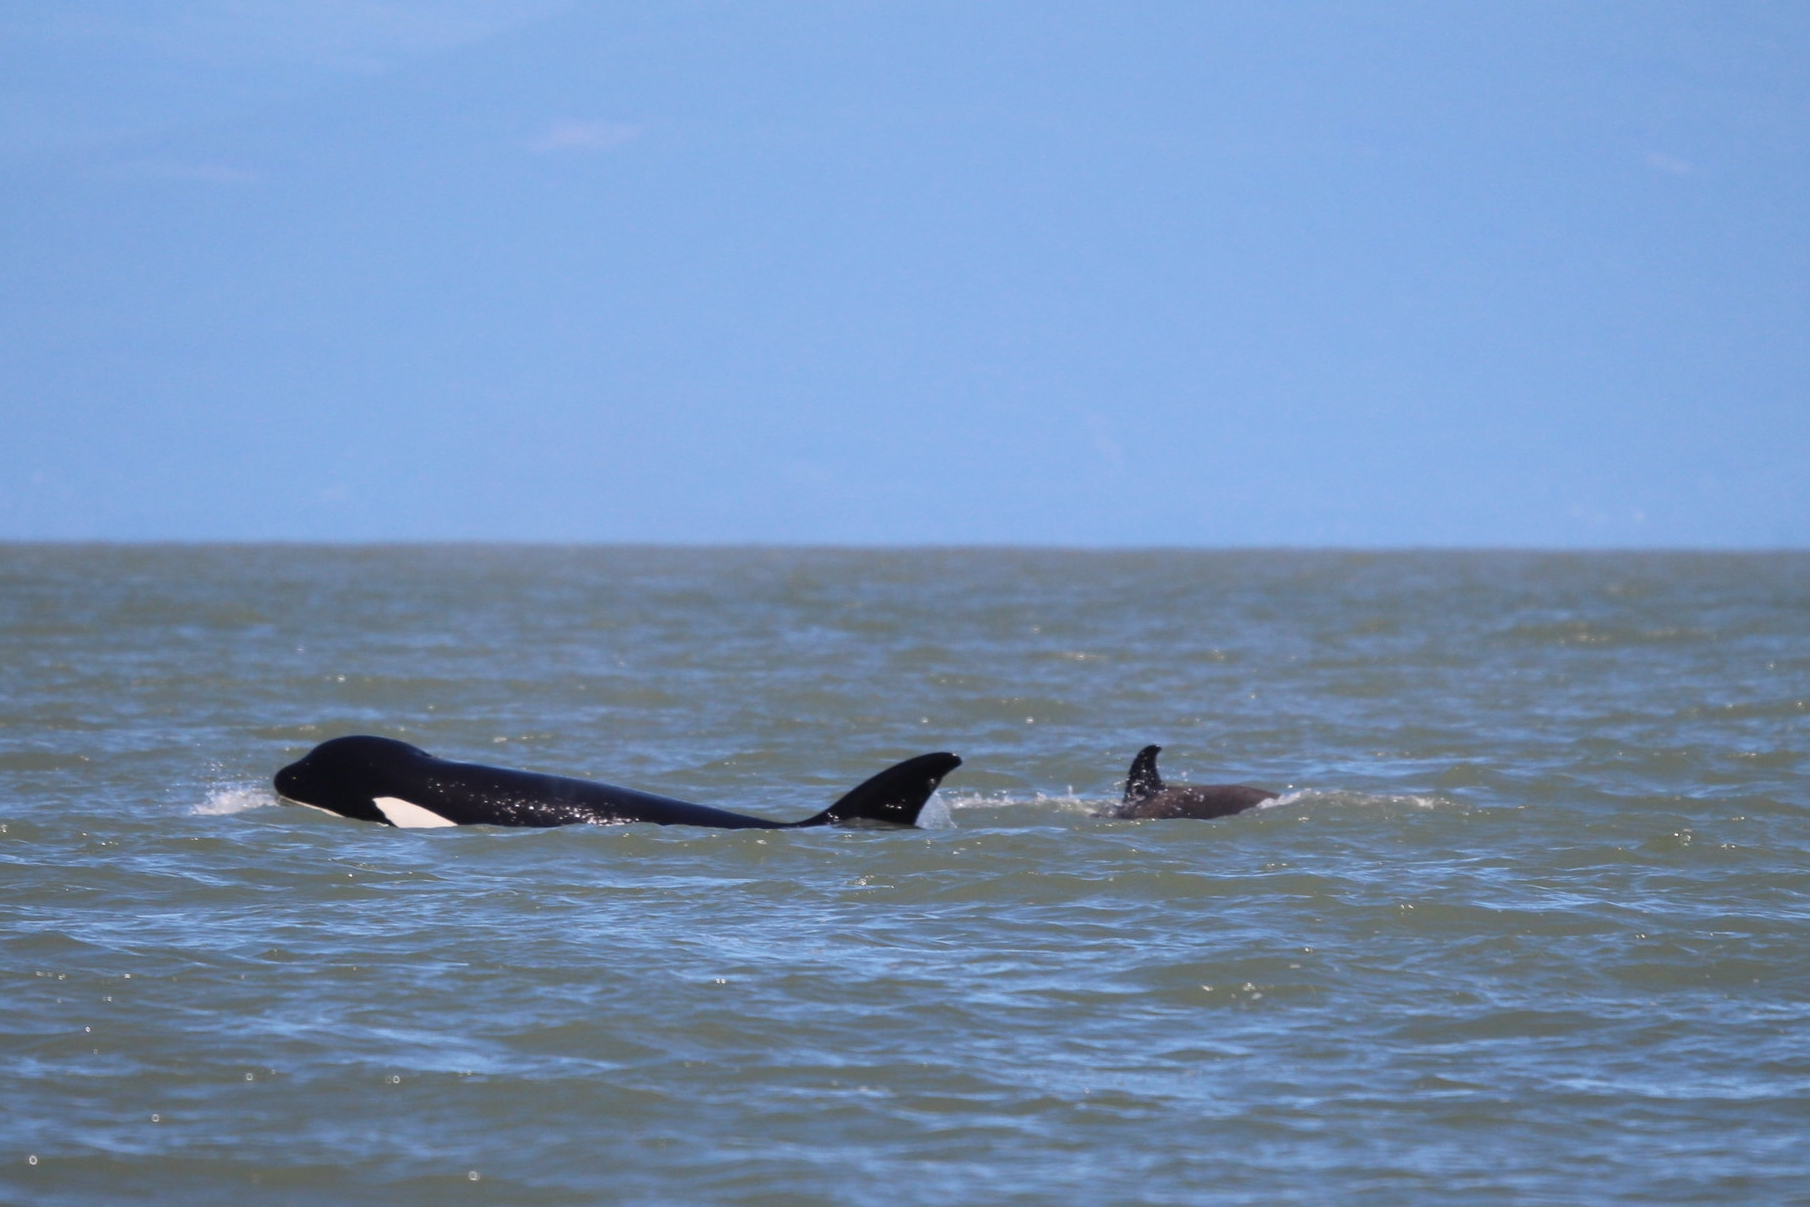 T65A, a very successful mother that we see frequently in the Salish Sea.Photo by Natalie Reichenbacher